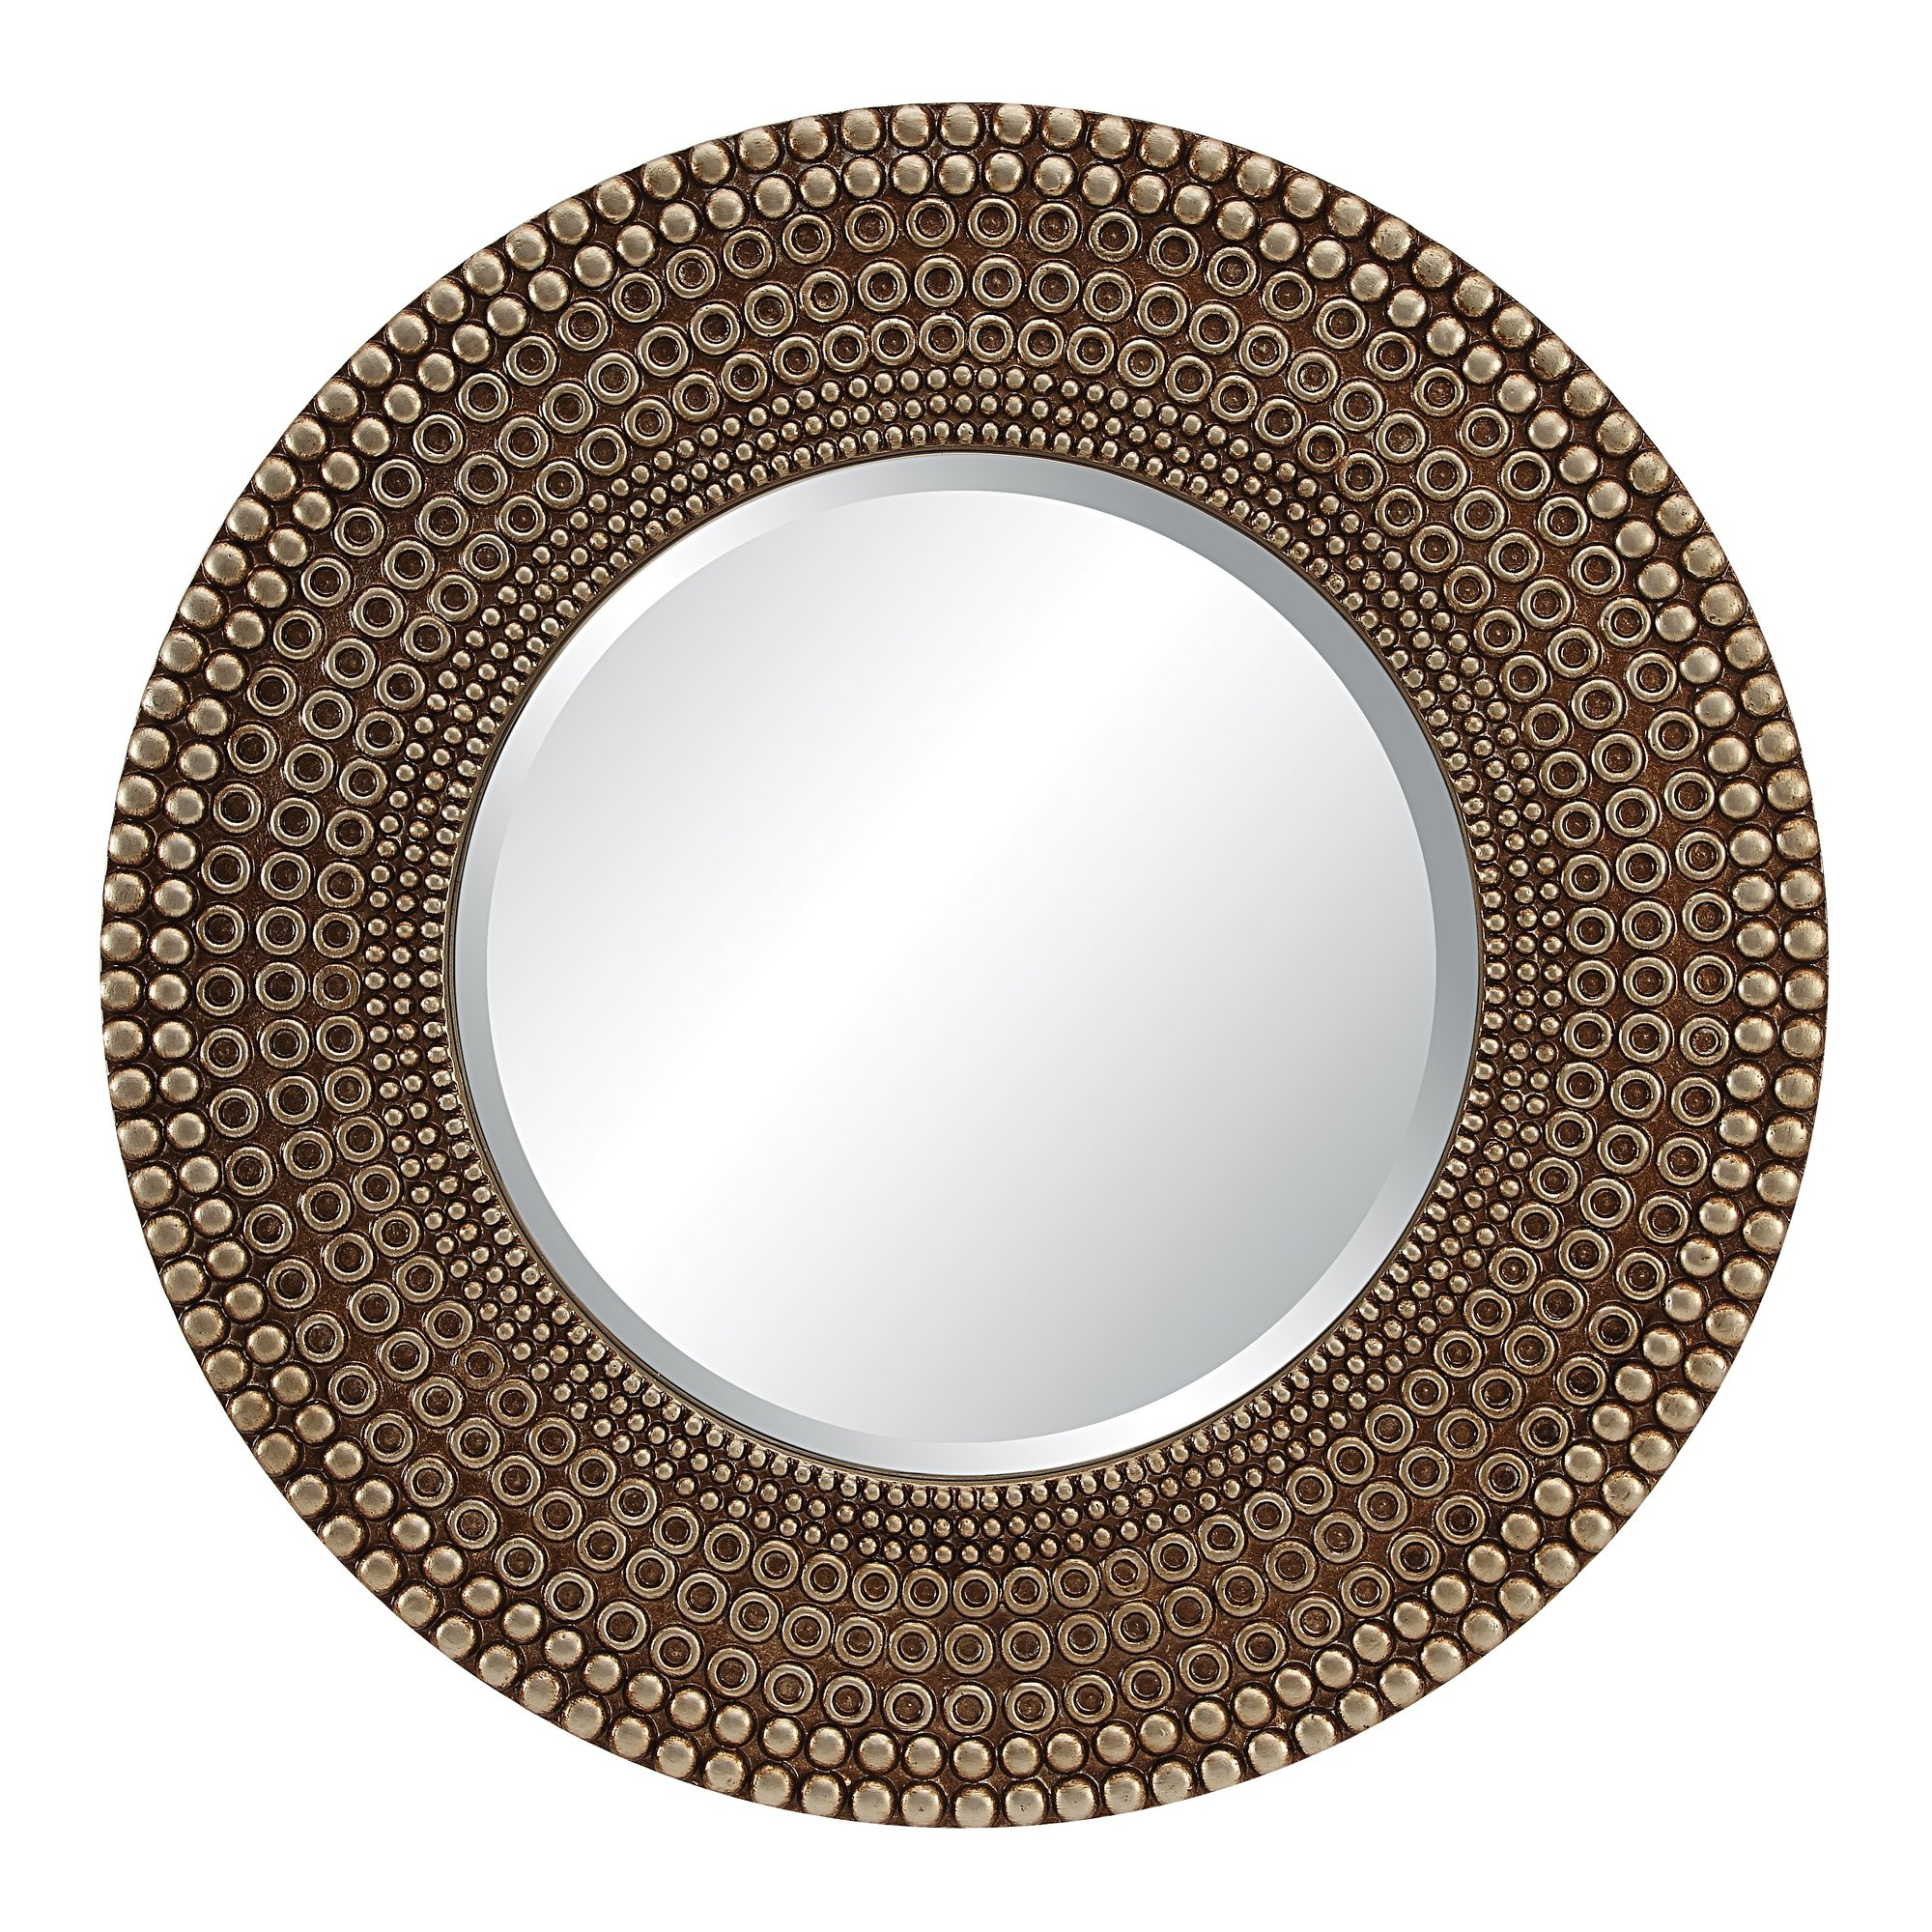 Round Mirrors Youll Love Wayfair Regarding Antique Small Mirrors (Image 13 of 15)